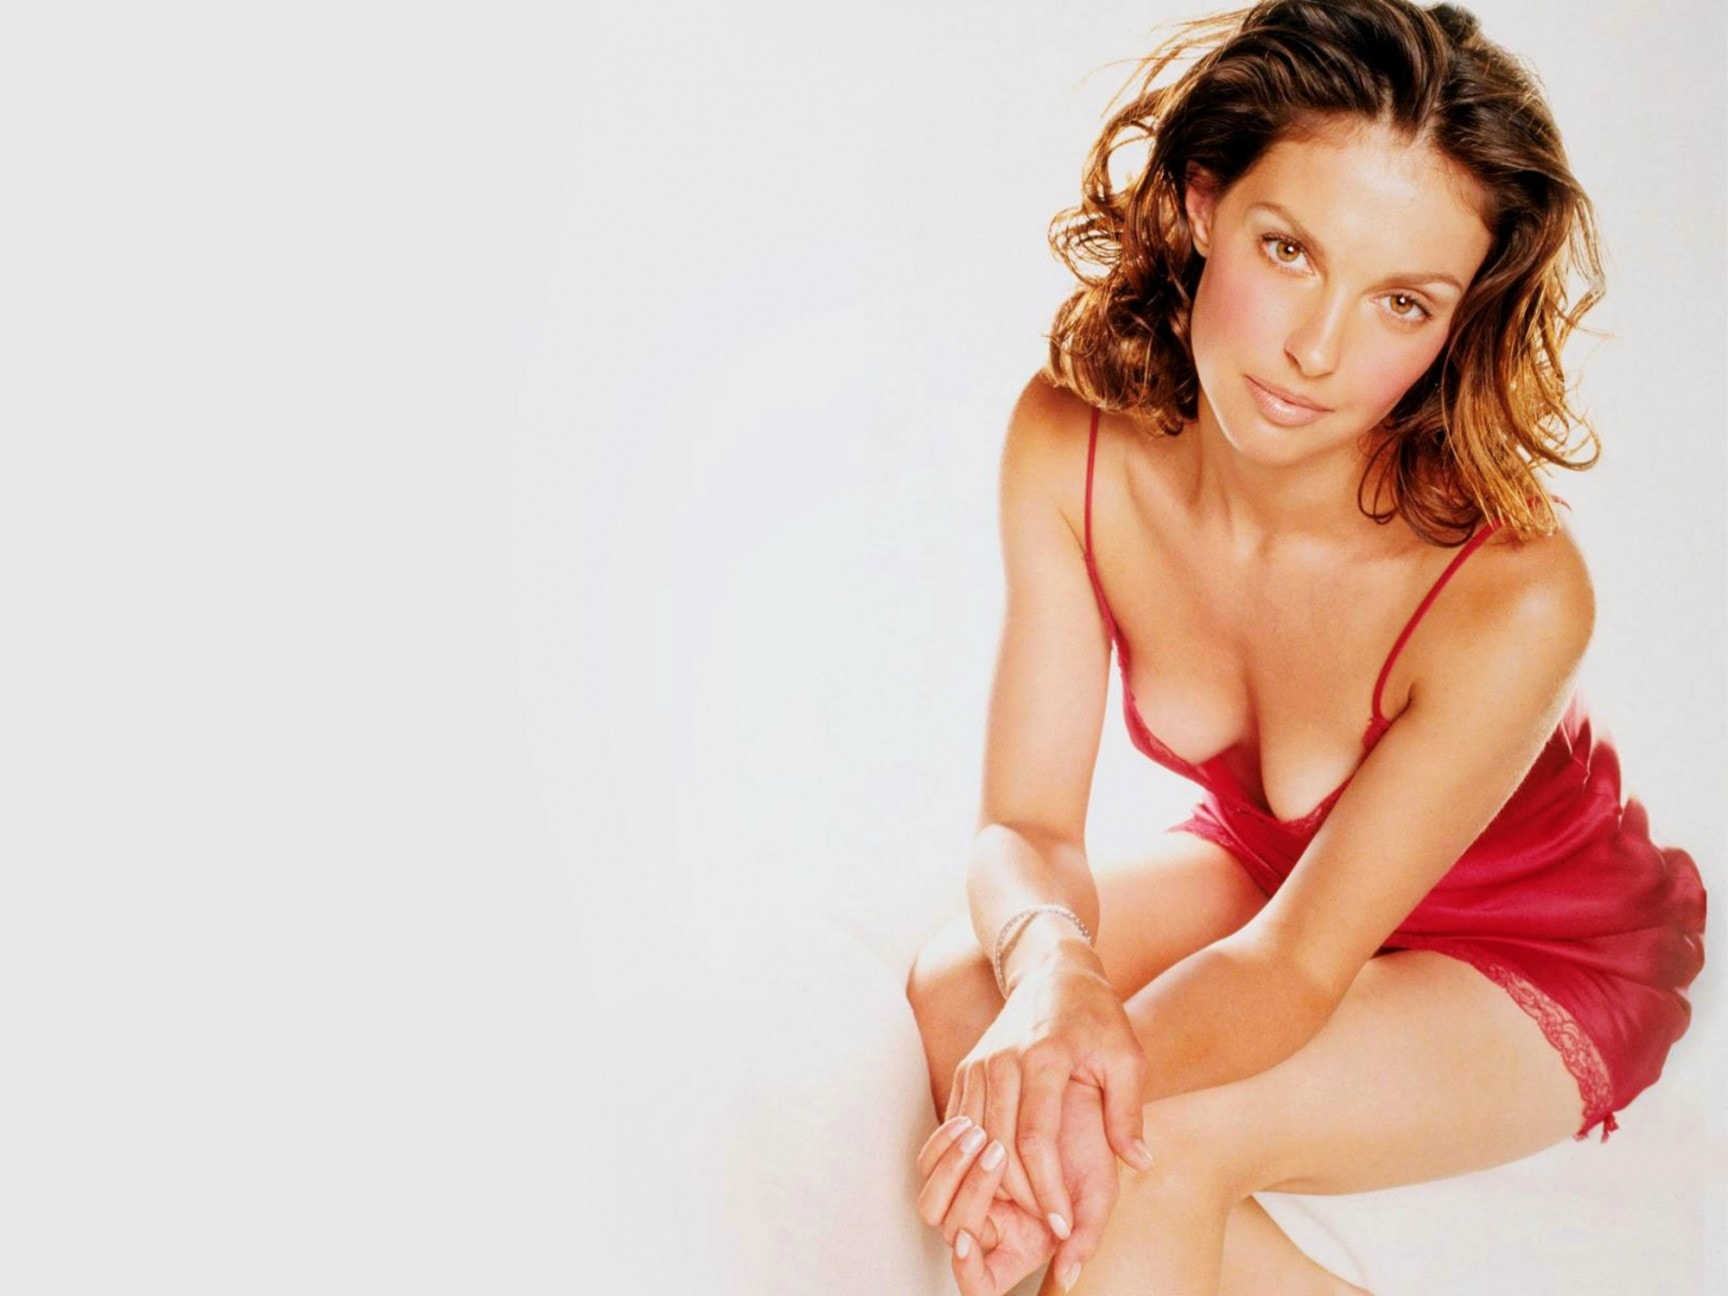 Ashley Judd widescreen wallpapers